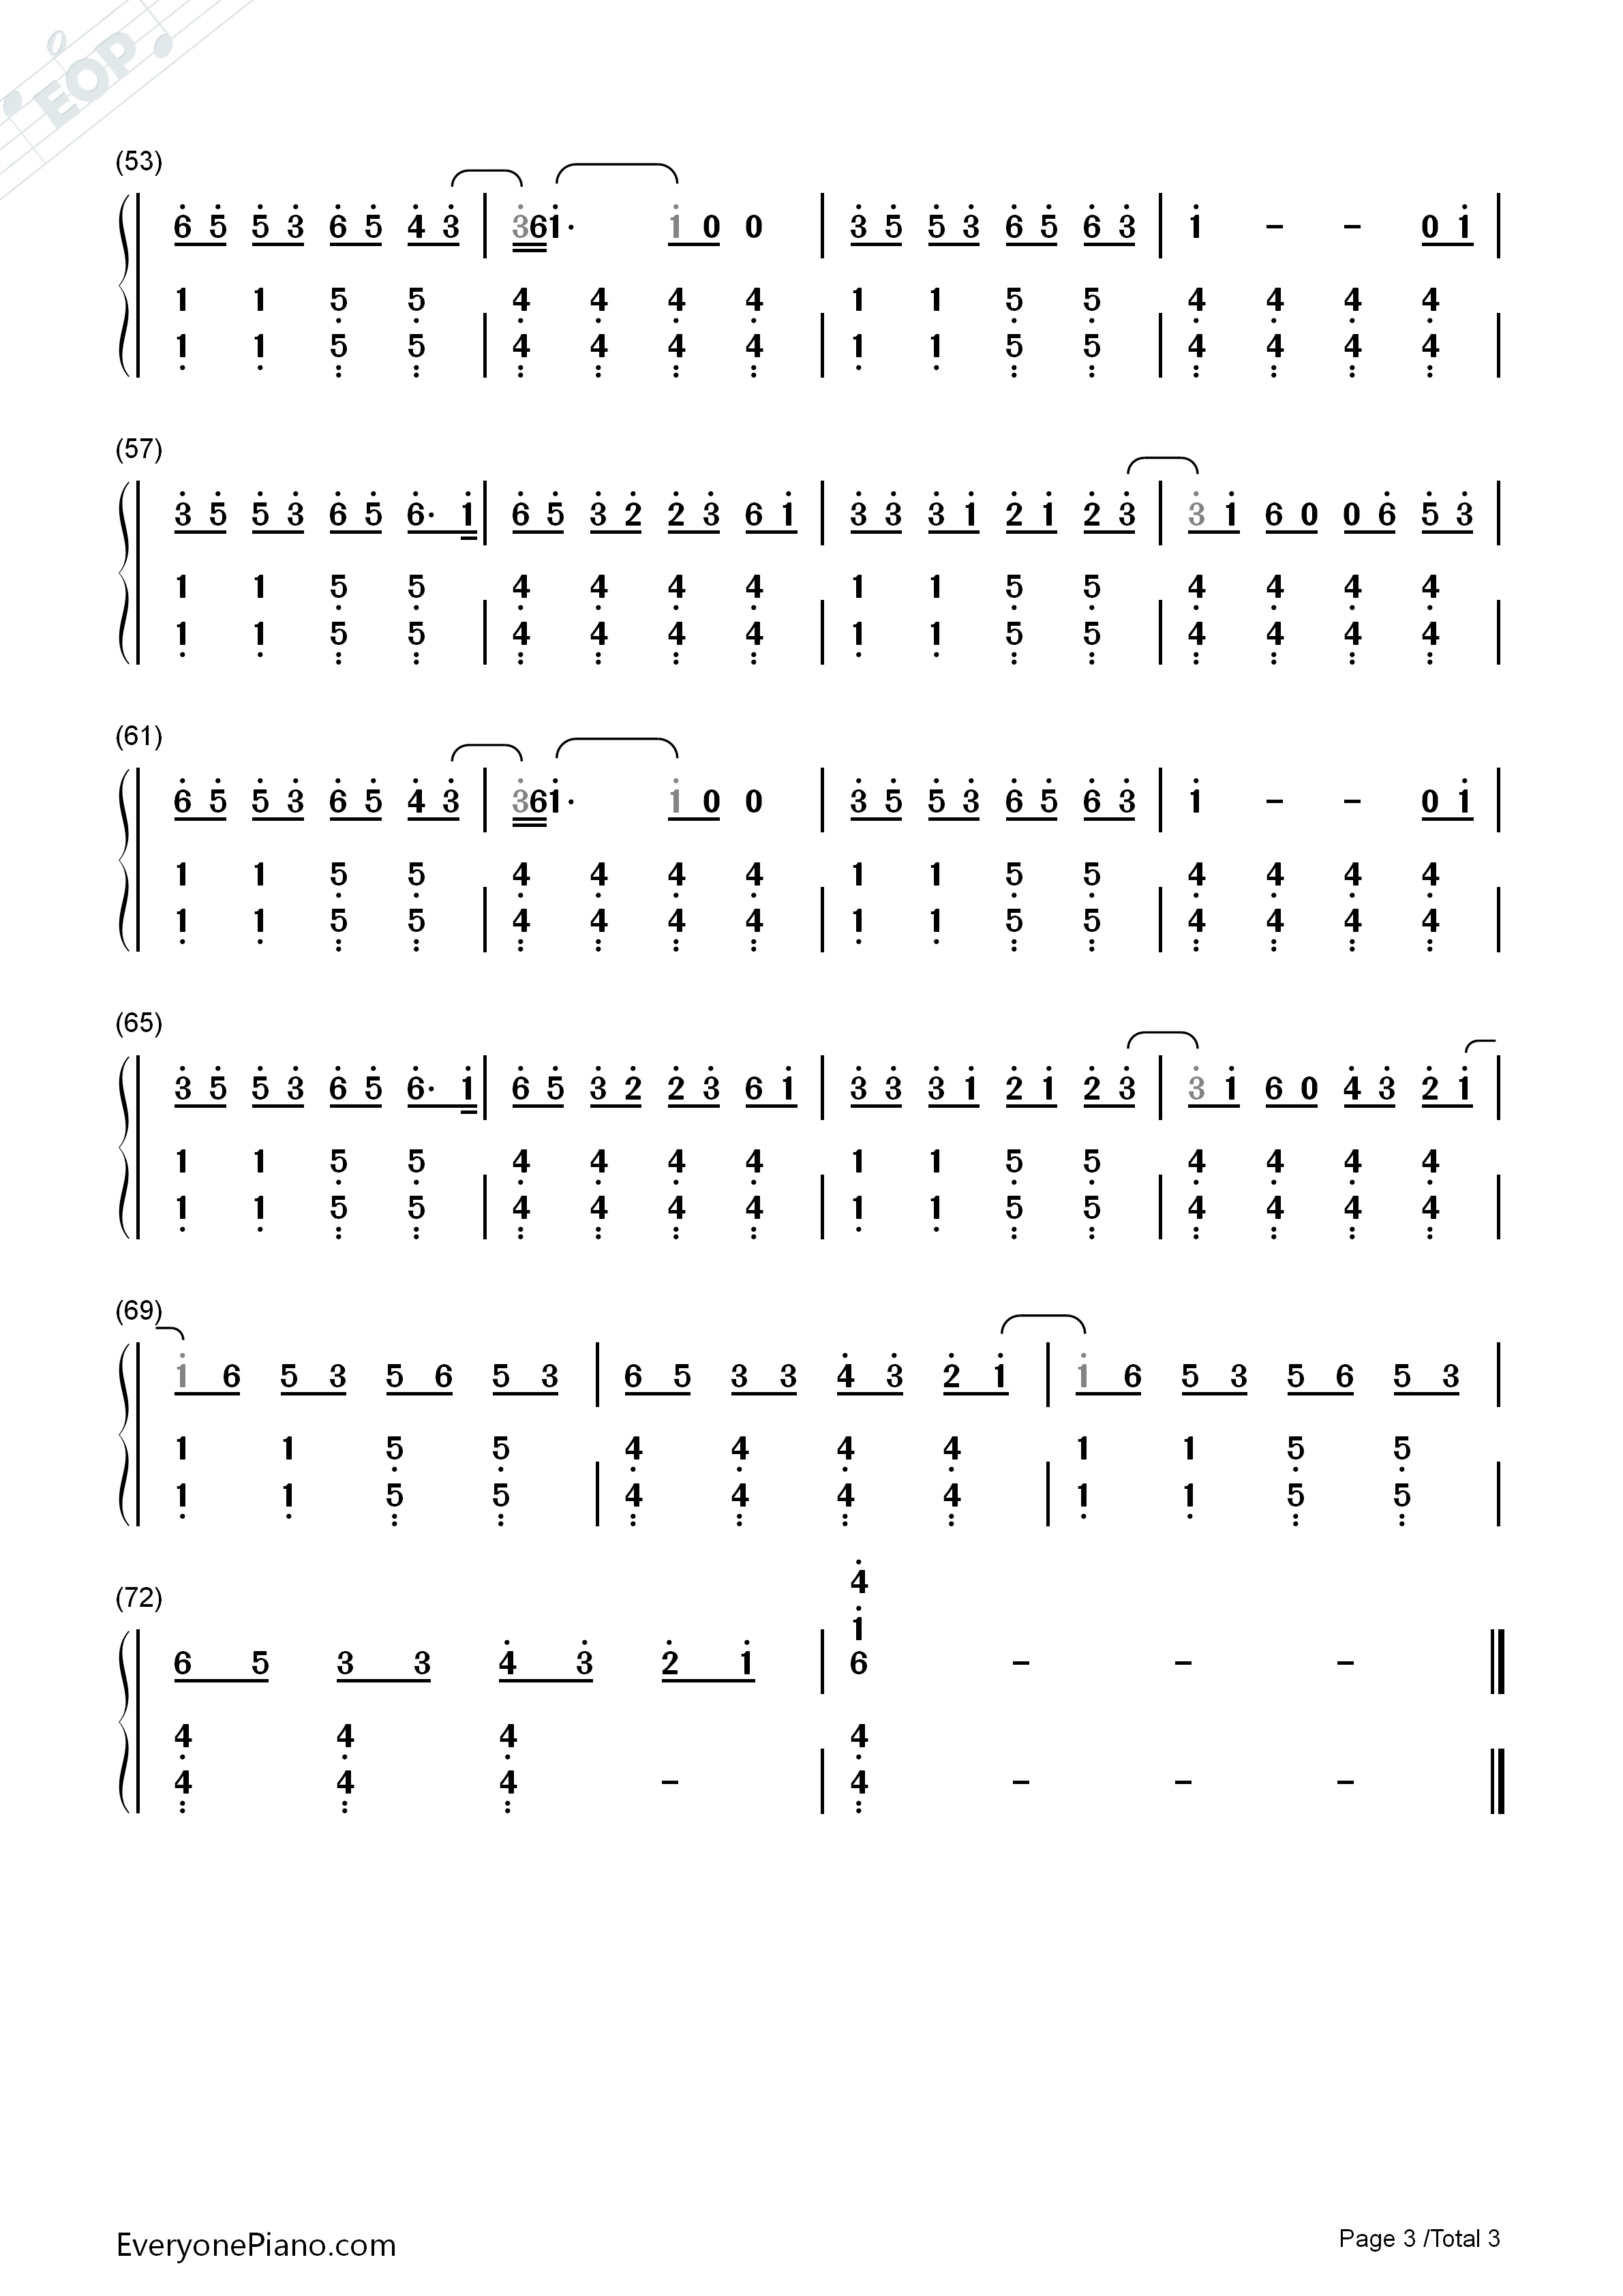 The lazy song bruno mars numbered musical notation preview 3 free listen now print sheet the lazy song bruno mars numbered musical notation preview 3 hexwebz Images